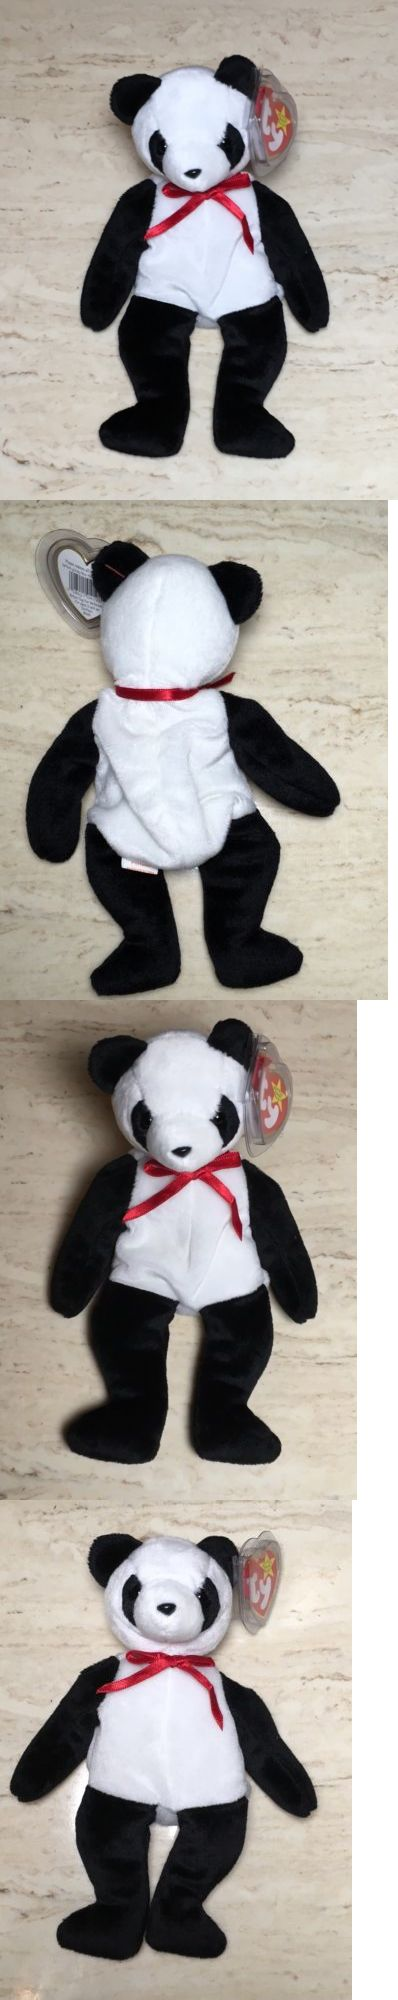 2b651d4ce6d Beanie Babies-Original 19205  Ty Beanie Baby Fortune Panda Bear Retired  Rare 12 6 1997 Tush Tag Stamped Errors -  BUY IT NOW ONLY   600 on eBay!